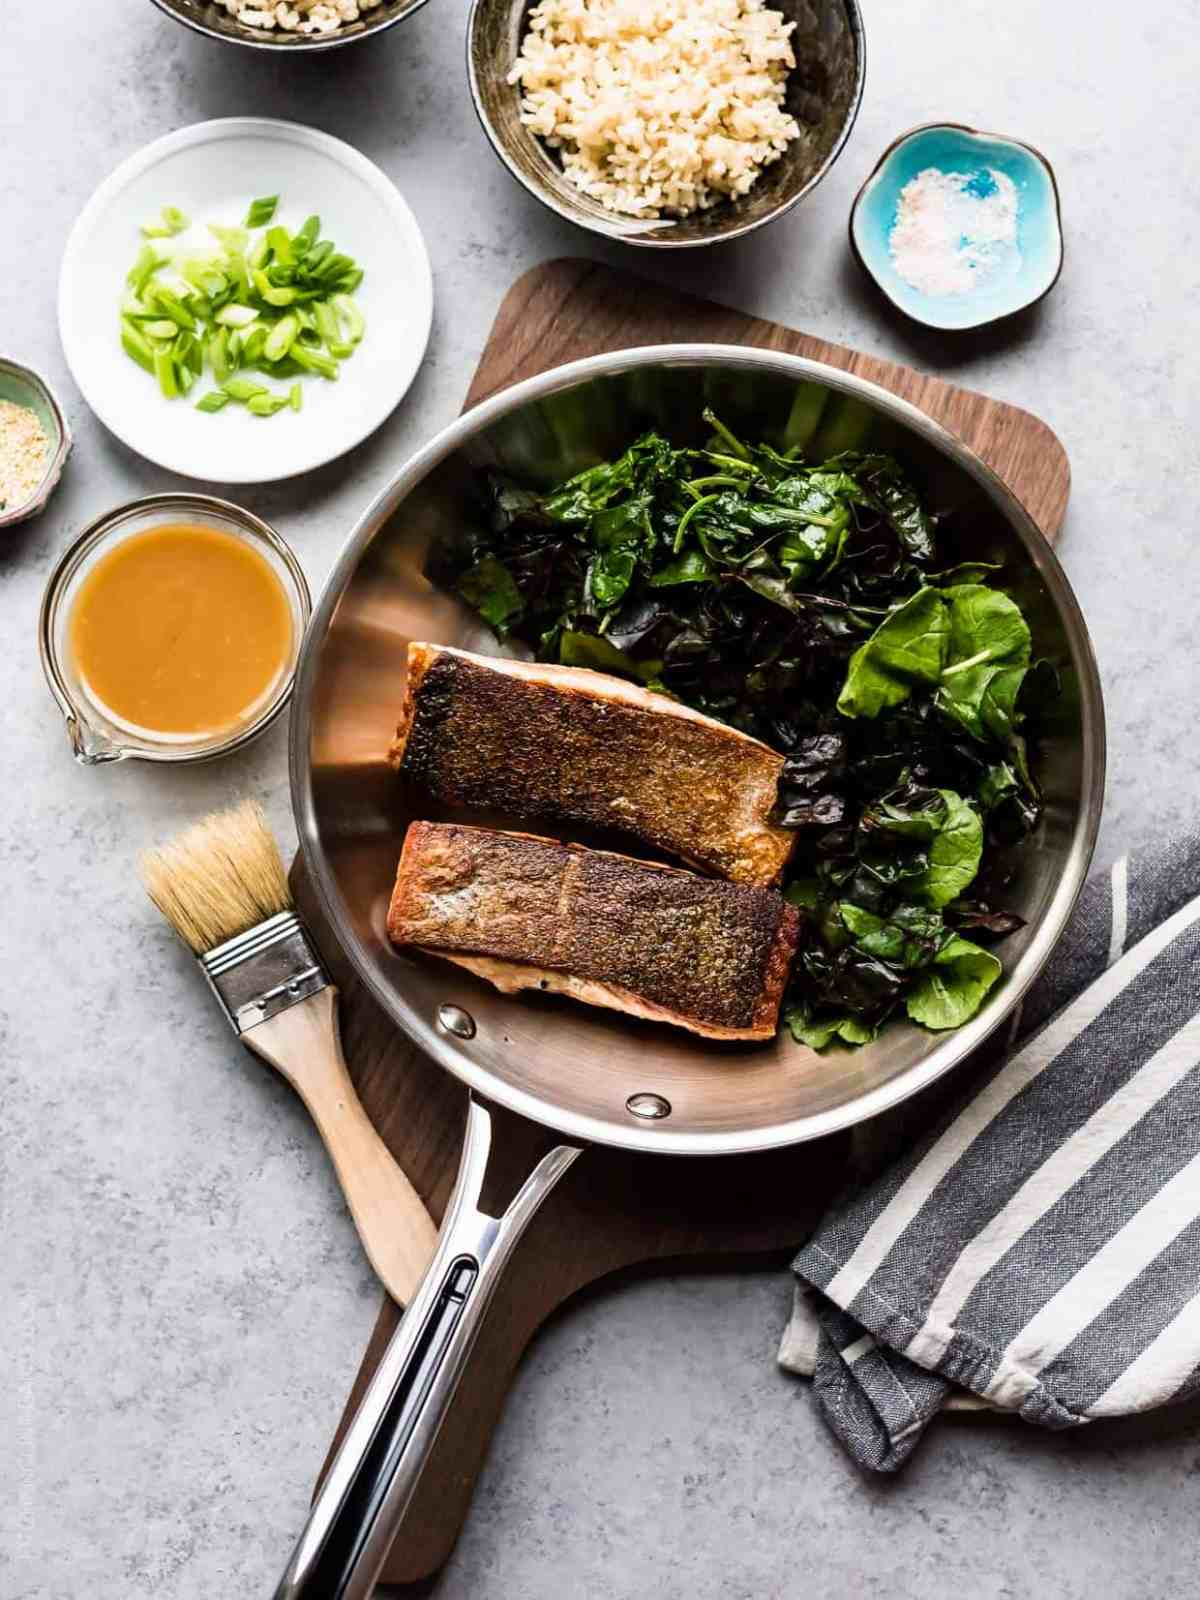 Miso Maple Glazed Salmon in Revere Cookware surrounded by a wilted green salad and additional ingredients.